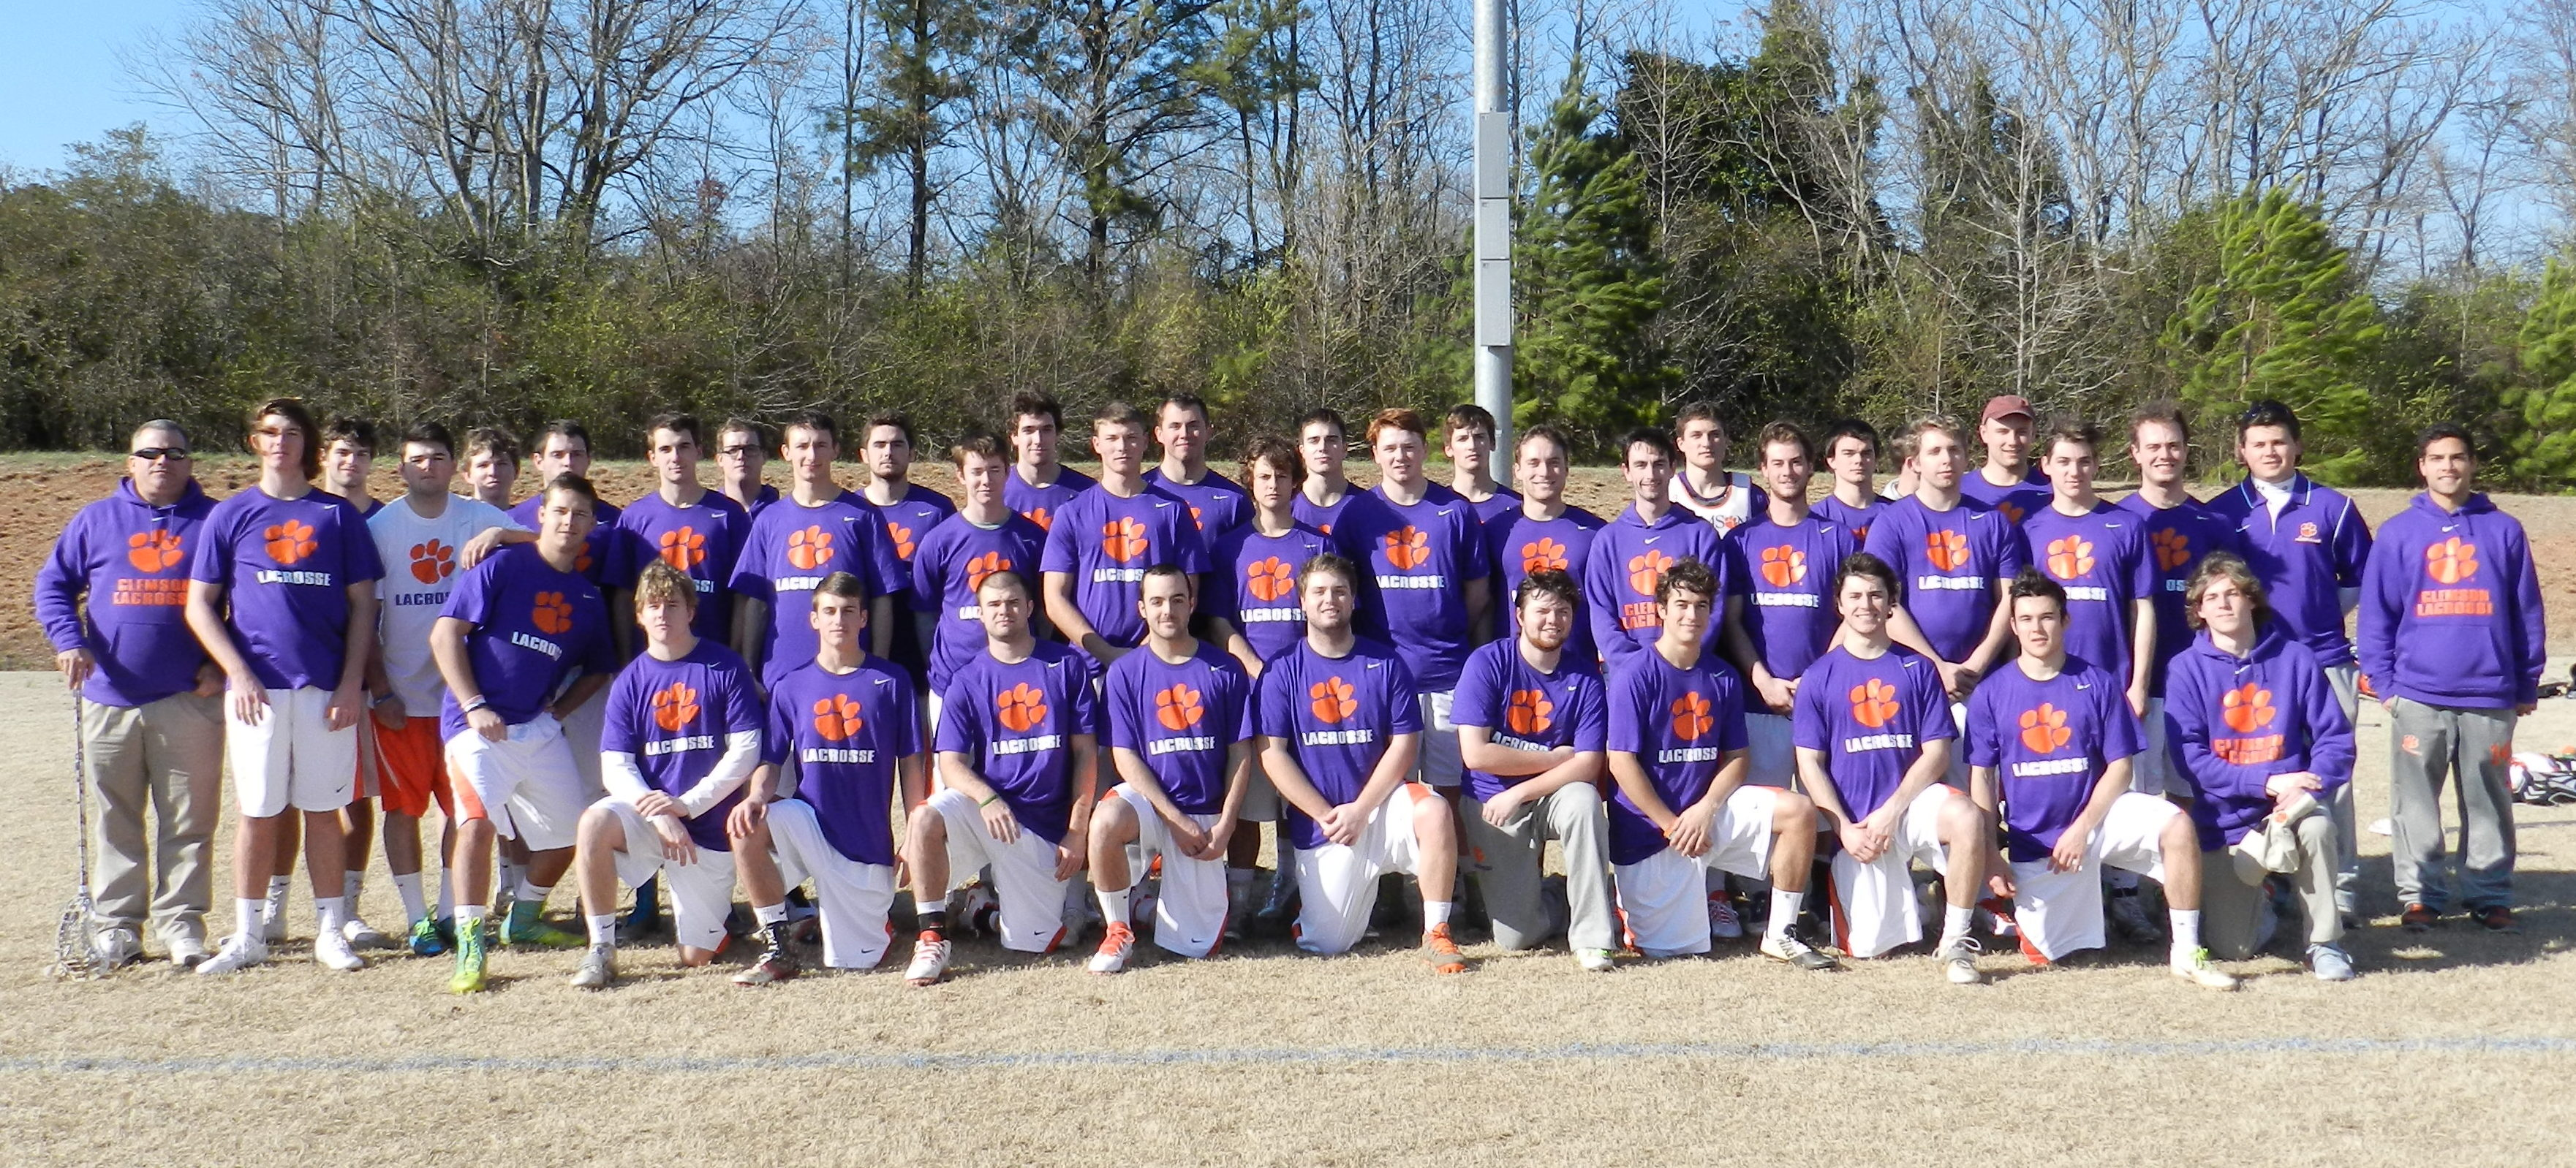 http://laxteams.net/files_public/1/1134/files/TeamPhoto